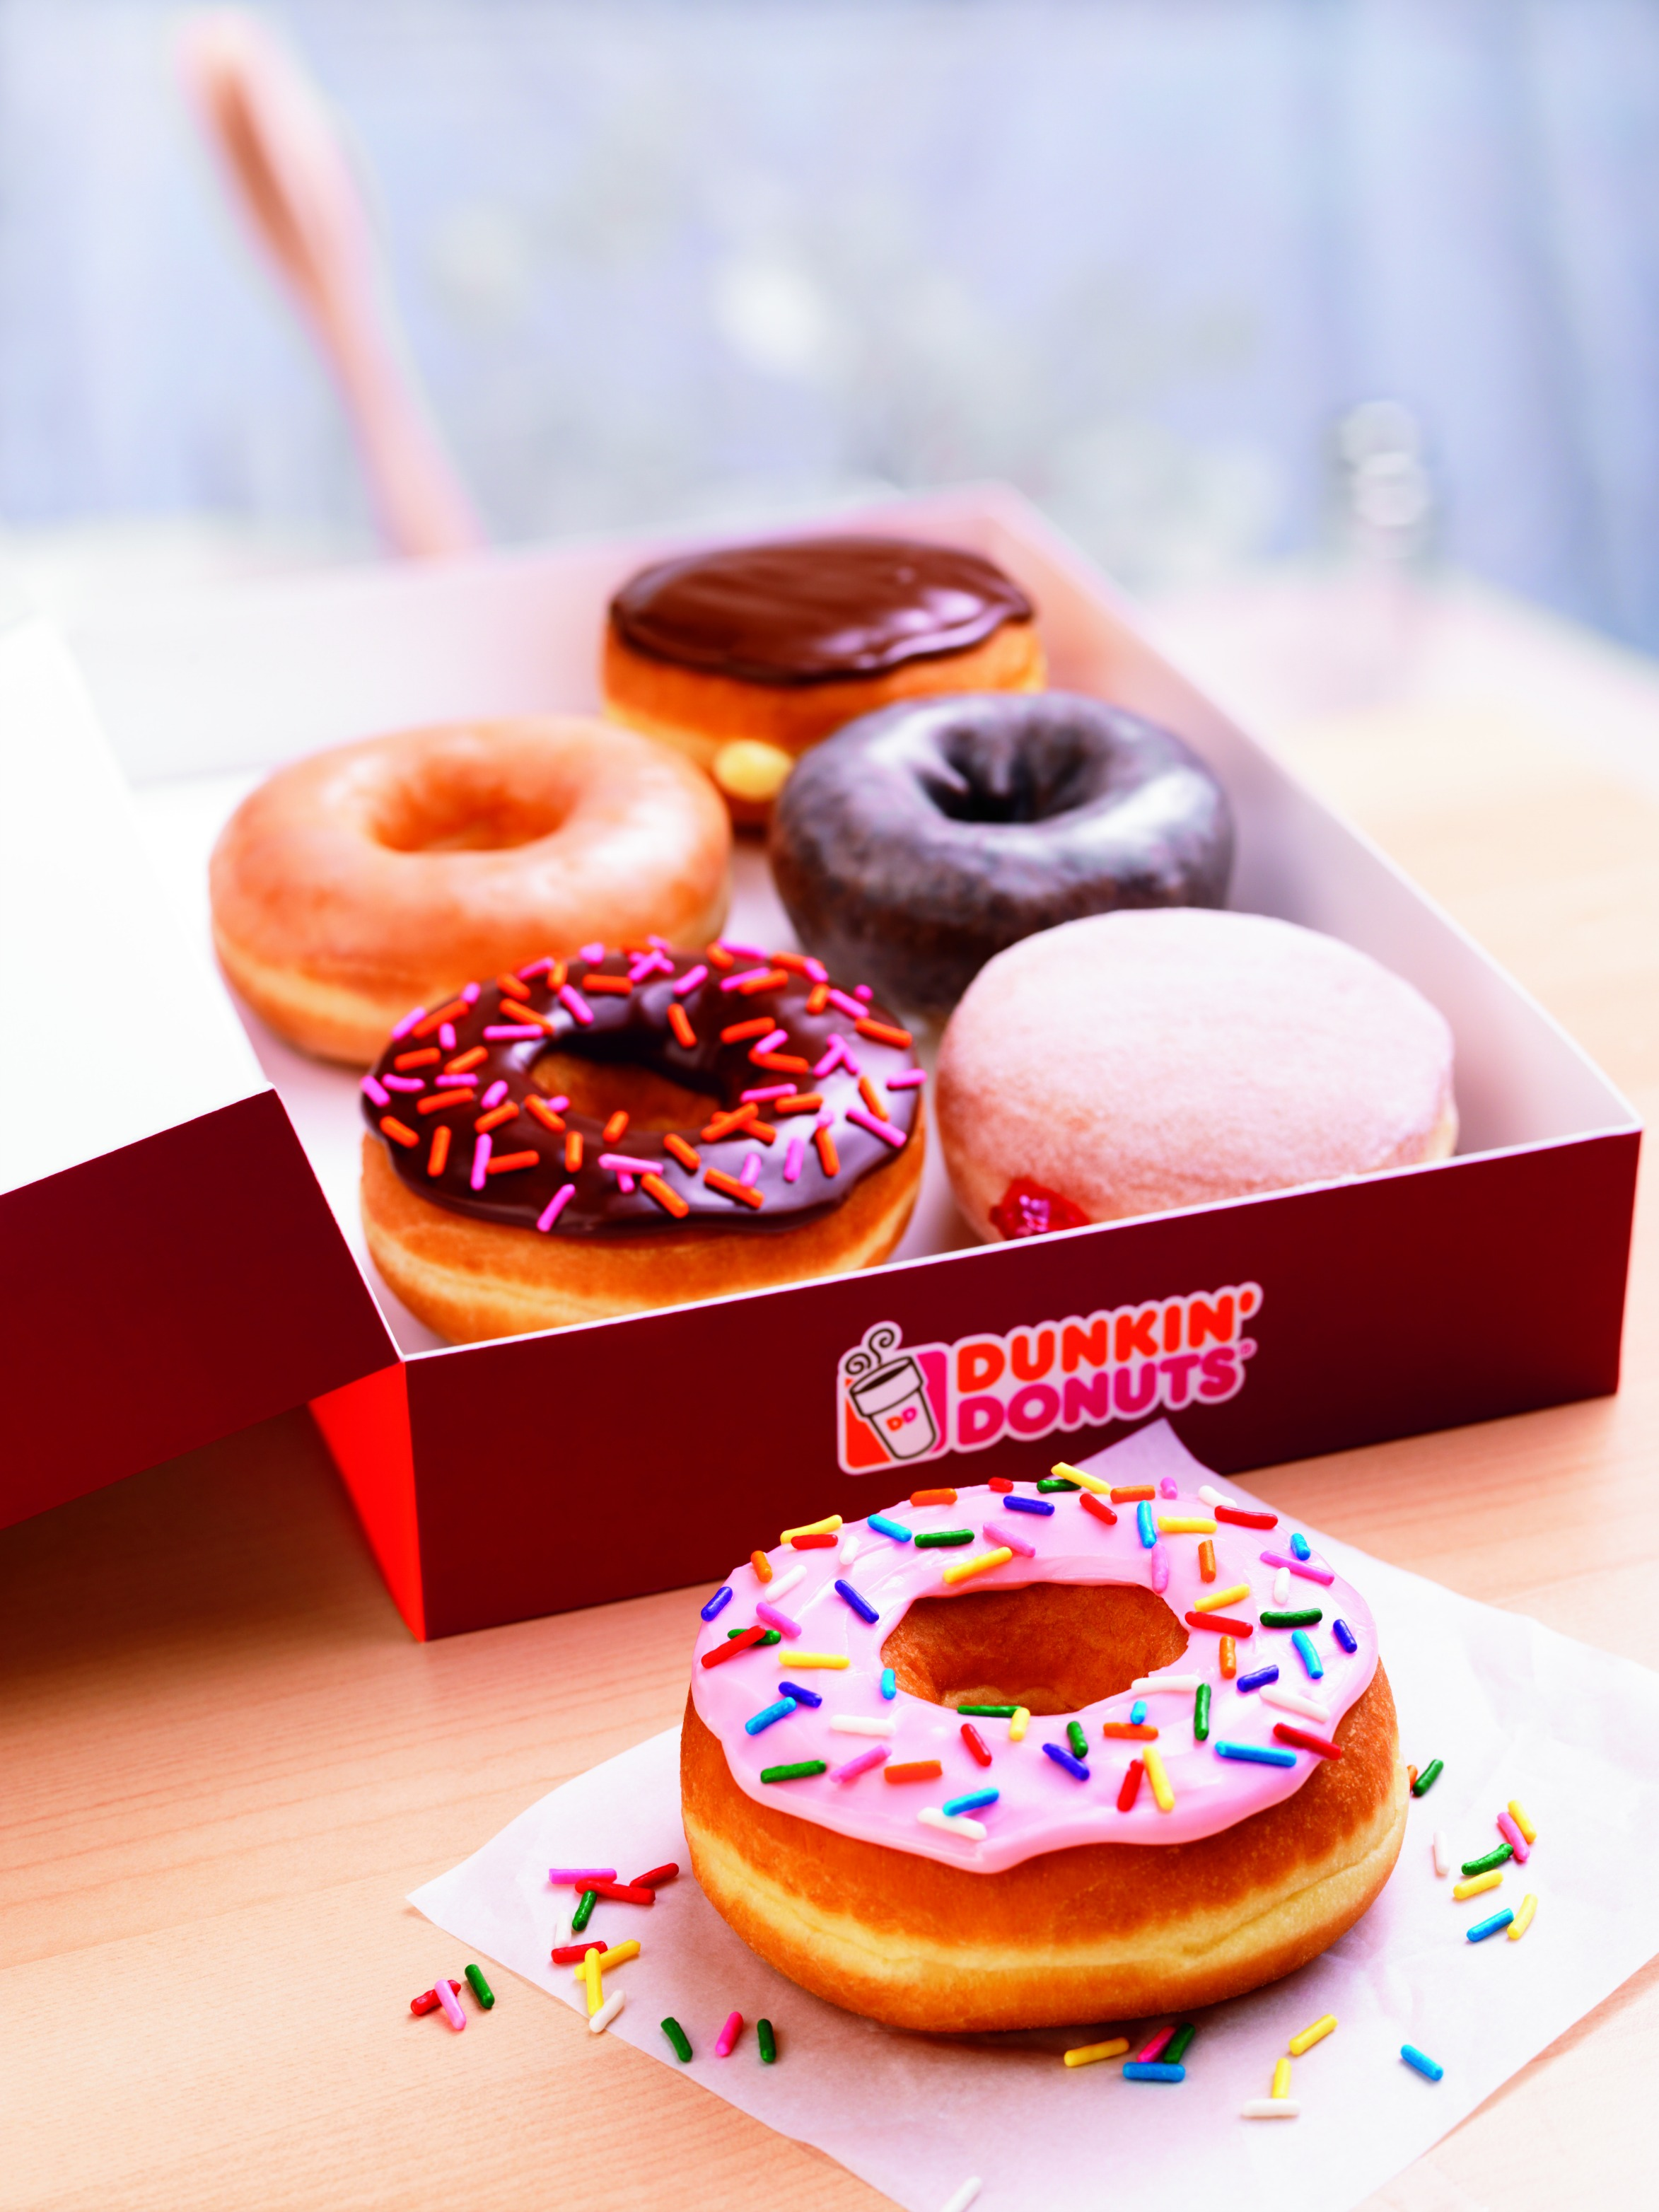 Celebrate National Donut Day at Dunkin' Donuts!